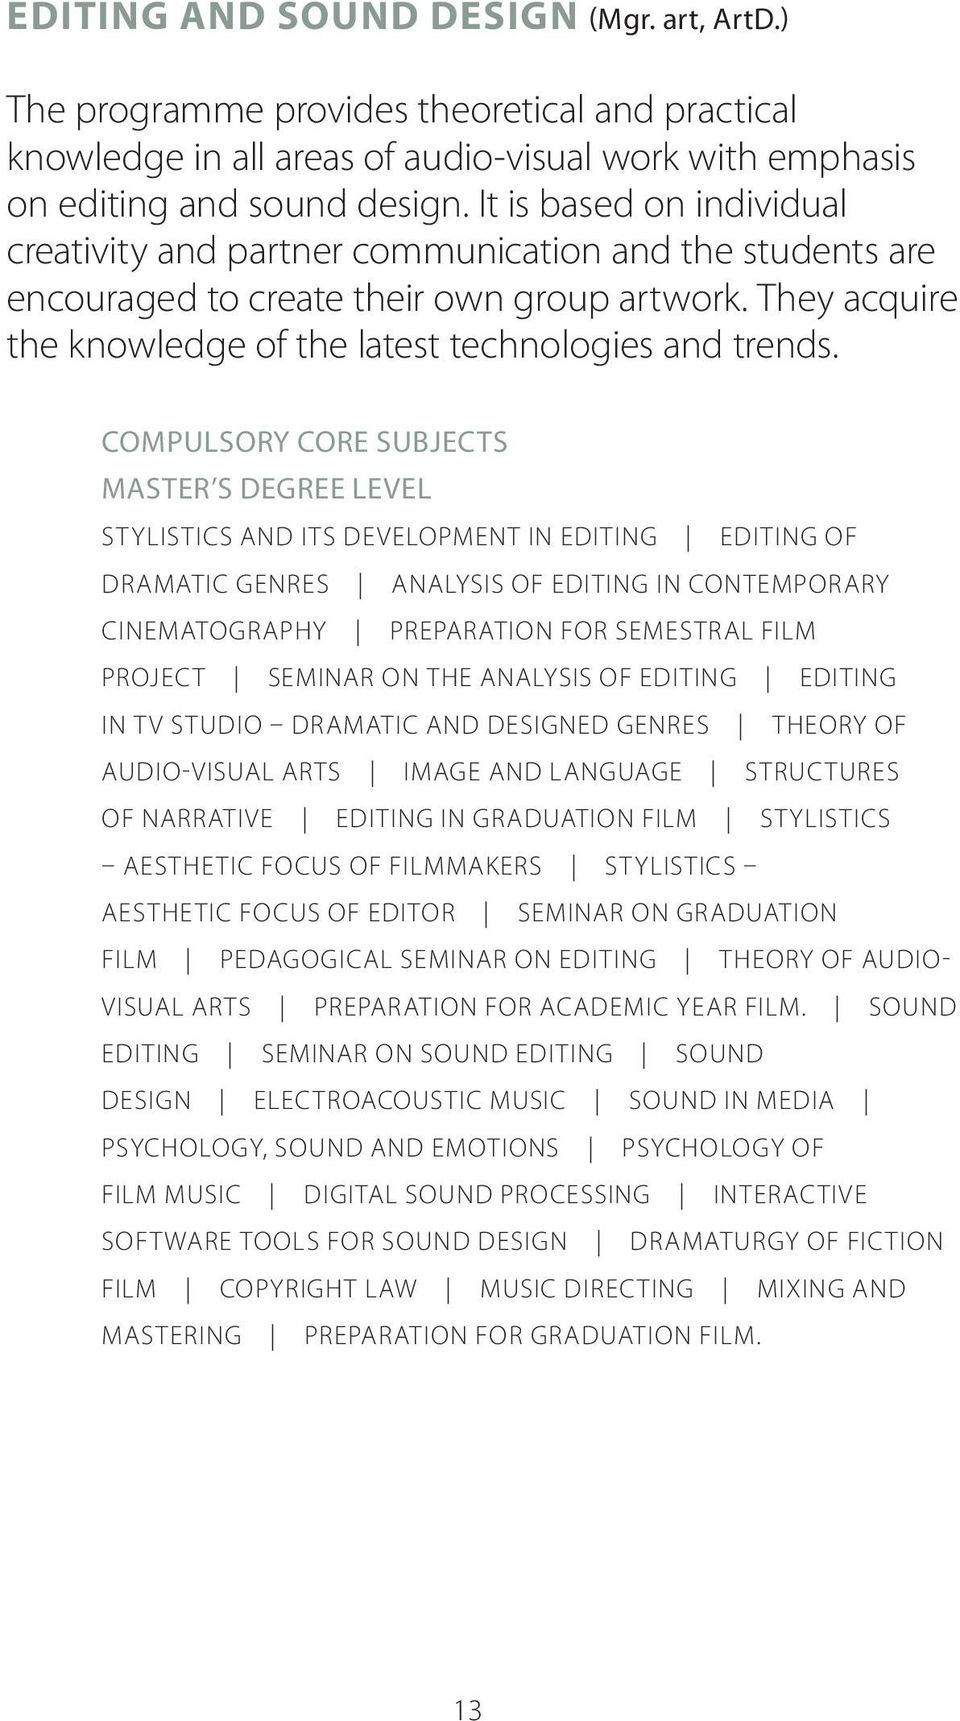 Compulsory core subjects Master s degree level Stylistics and its Development in Editing Editing of Dramatic Genres Analysis of Editing in Contemporary Cinematography Preparation for Semestral Film